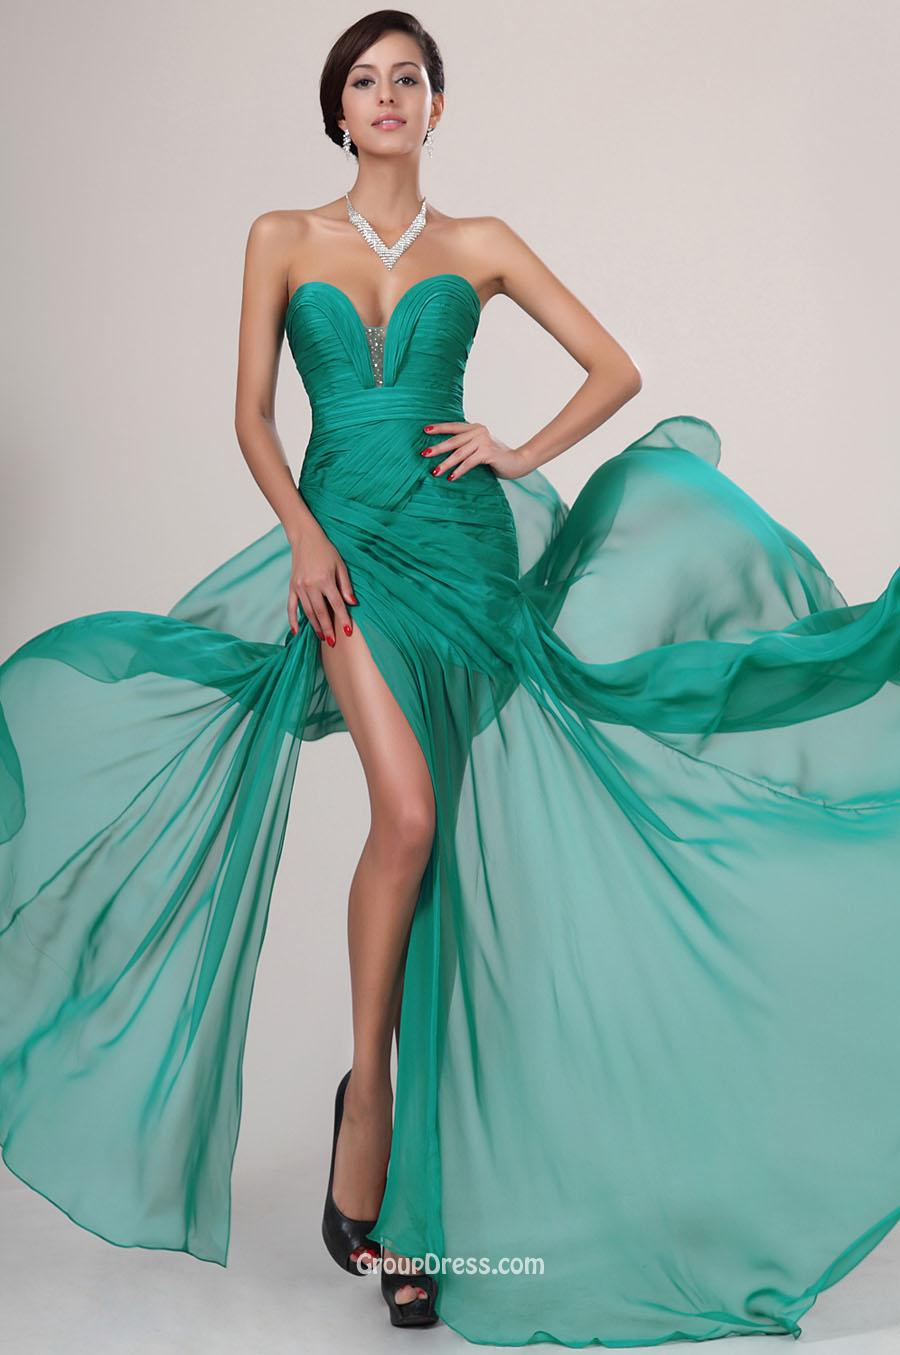 Emerald Blue Dress : Make You Look Thinner